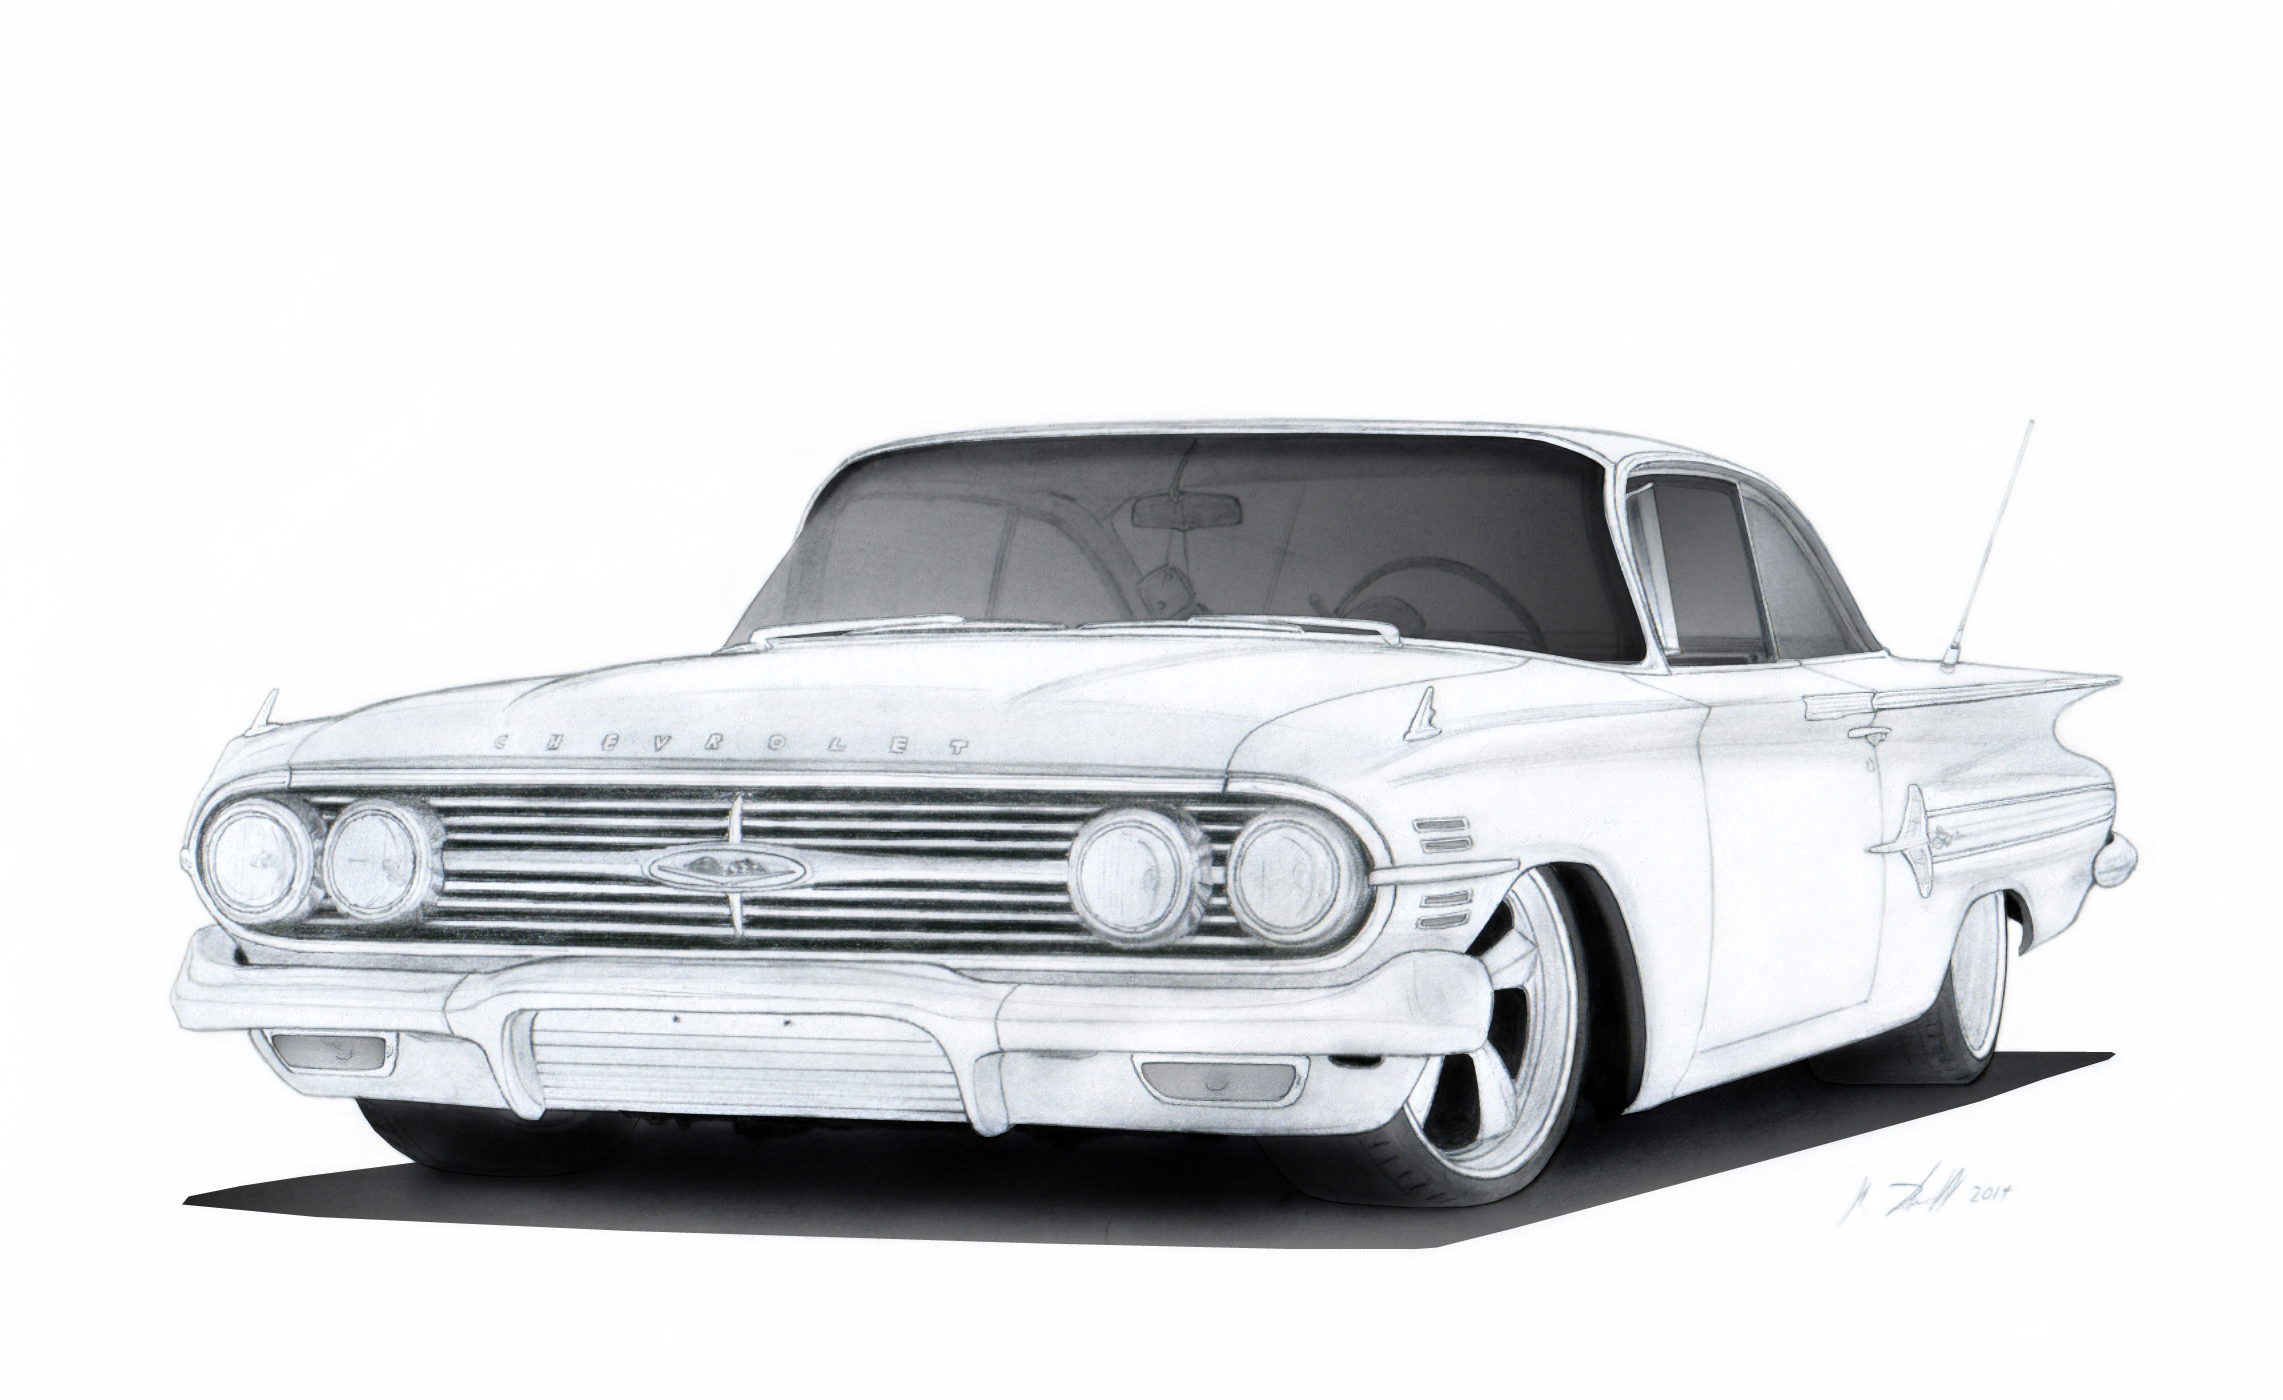 1960 Chevrolet Impala Pro Touring Drawing 460988782 on old but cool cars low riders